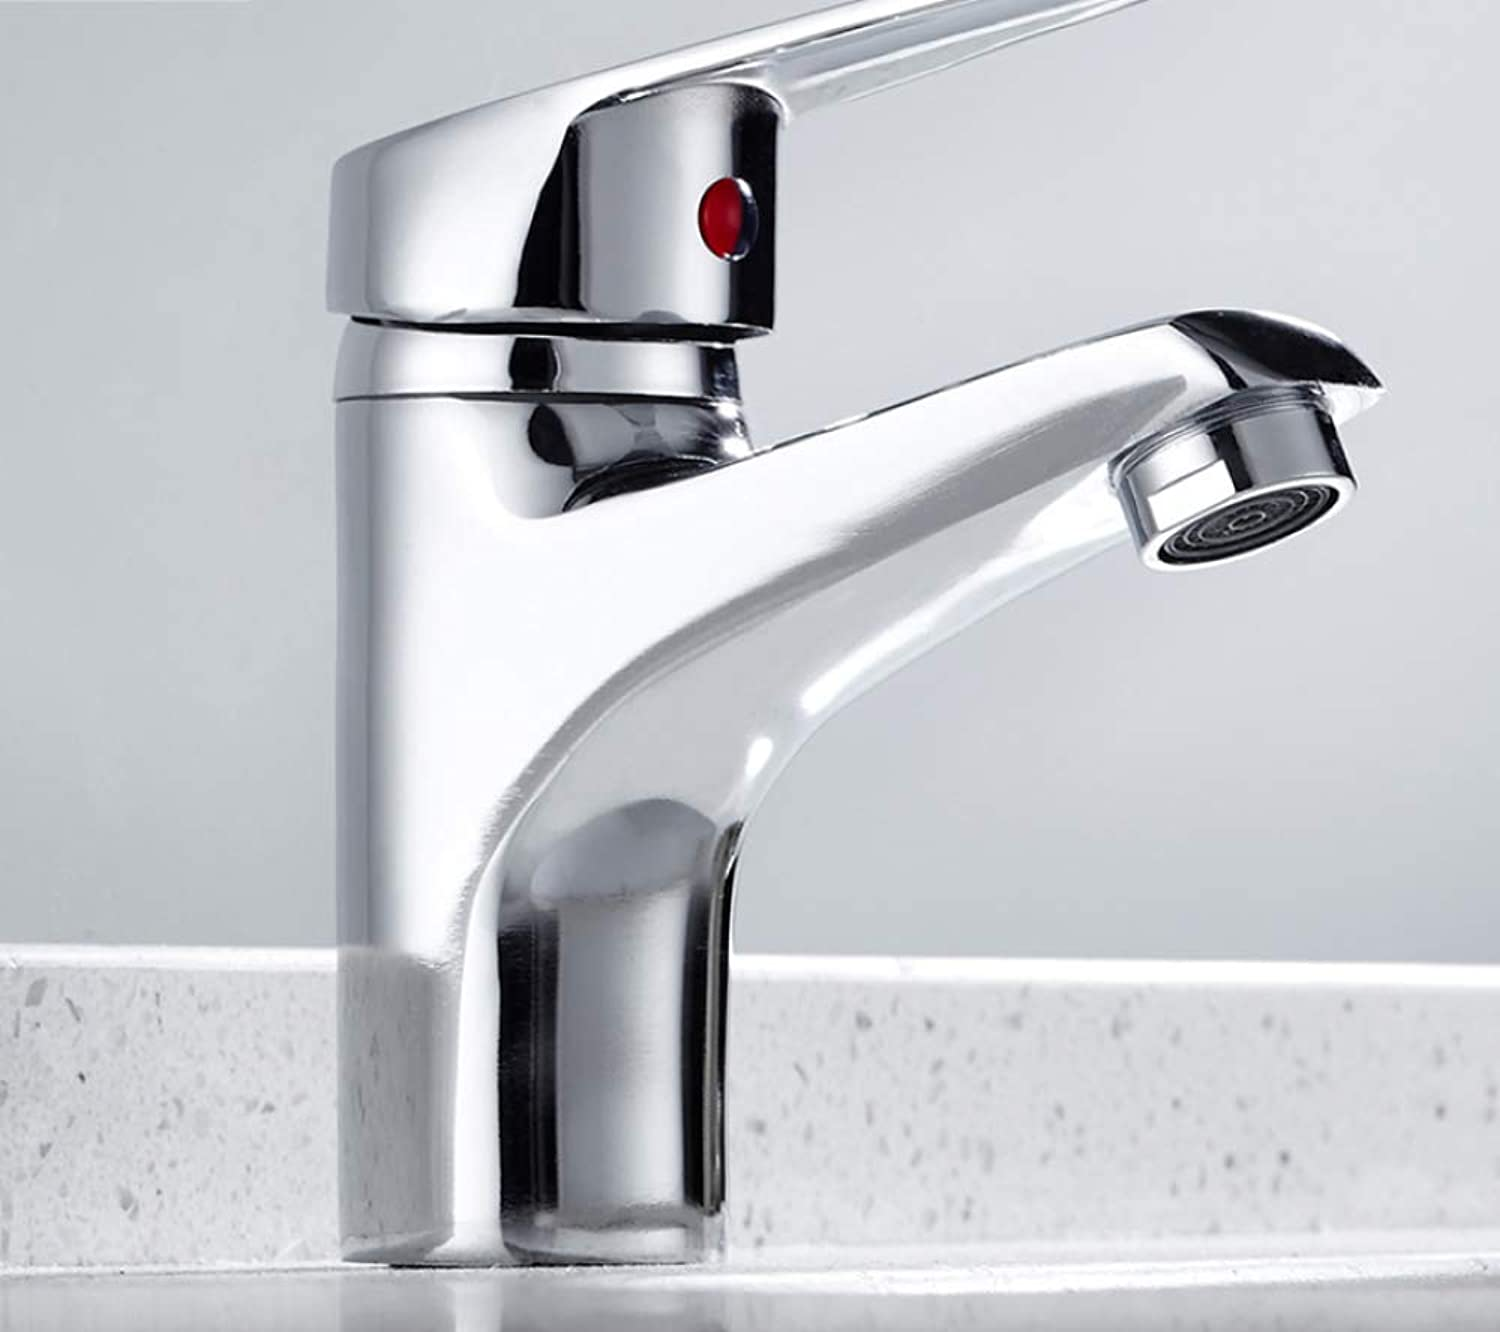 SLTYSCF Faucet Best Sale Bathroom Basin Sink Faucet Chrome Single Handle Kitchen Tap Faucet Mixer hot and Cold Water Hose Chrome Finished